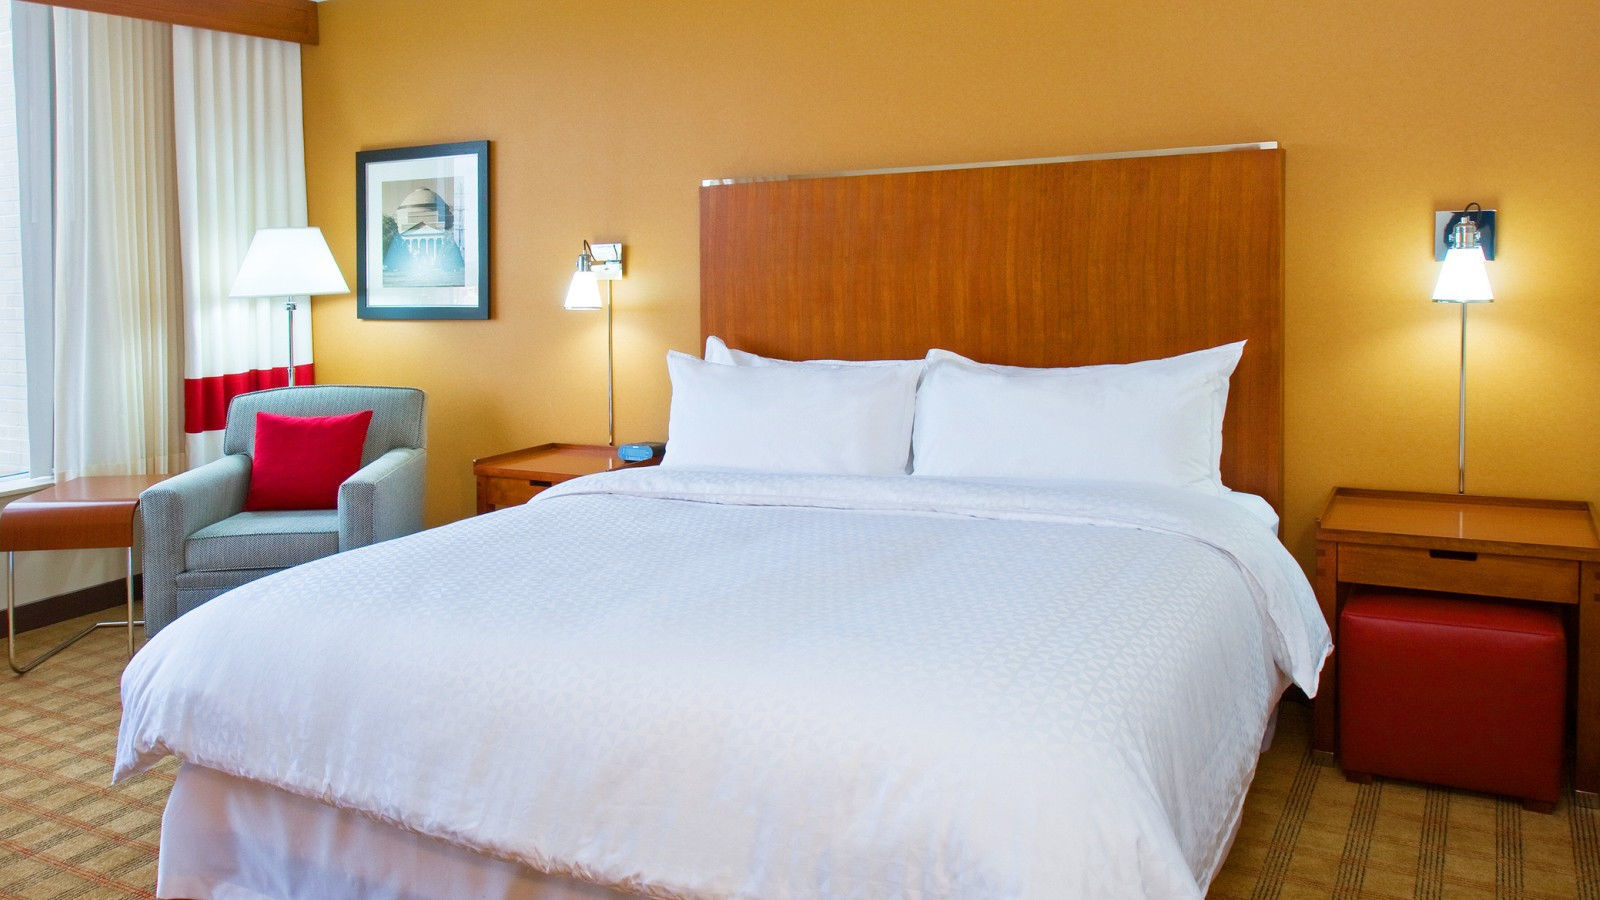 Raleigh Durham Airport Accommodations - King Guest Room